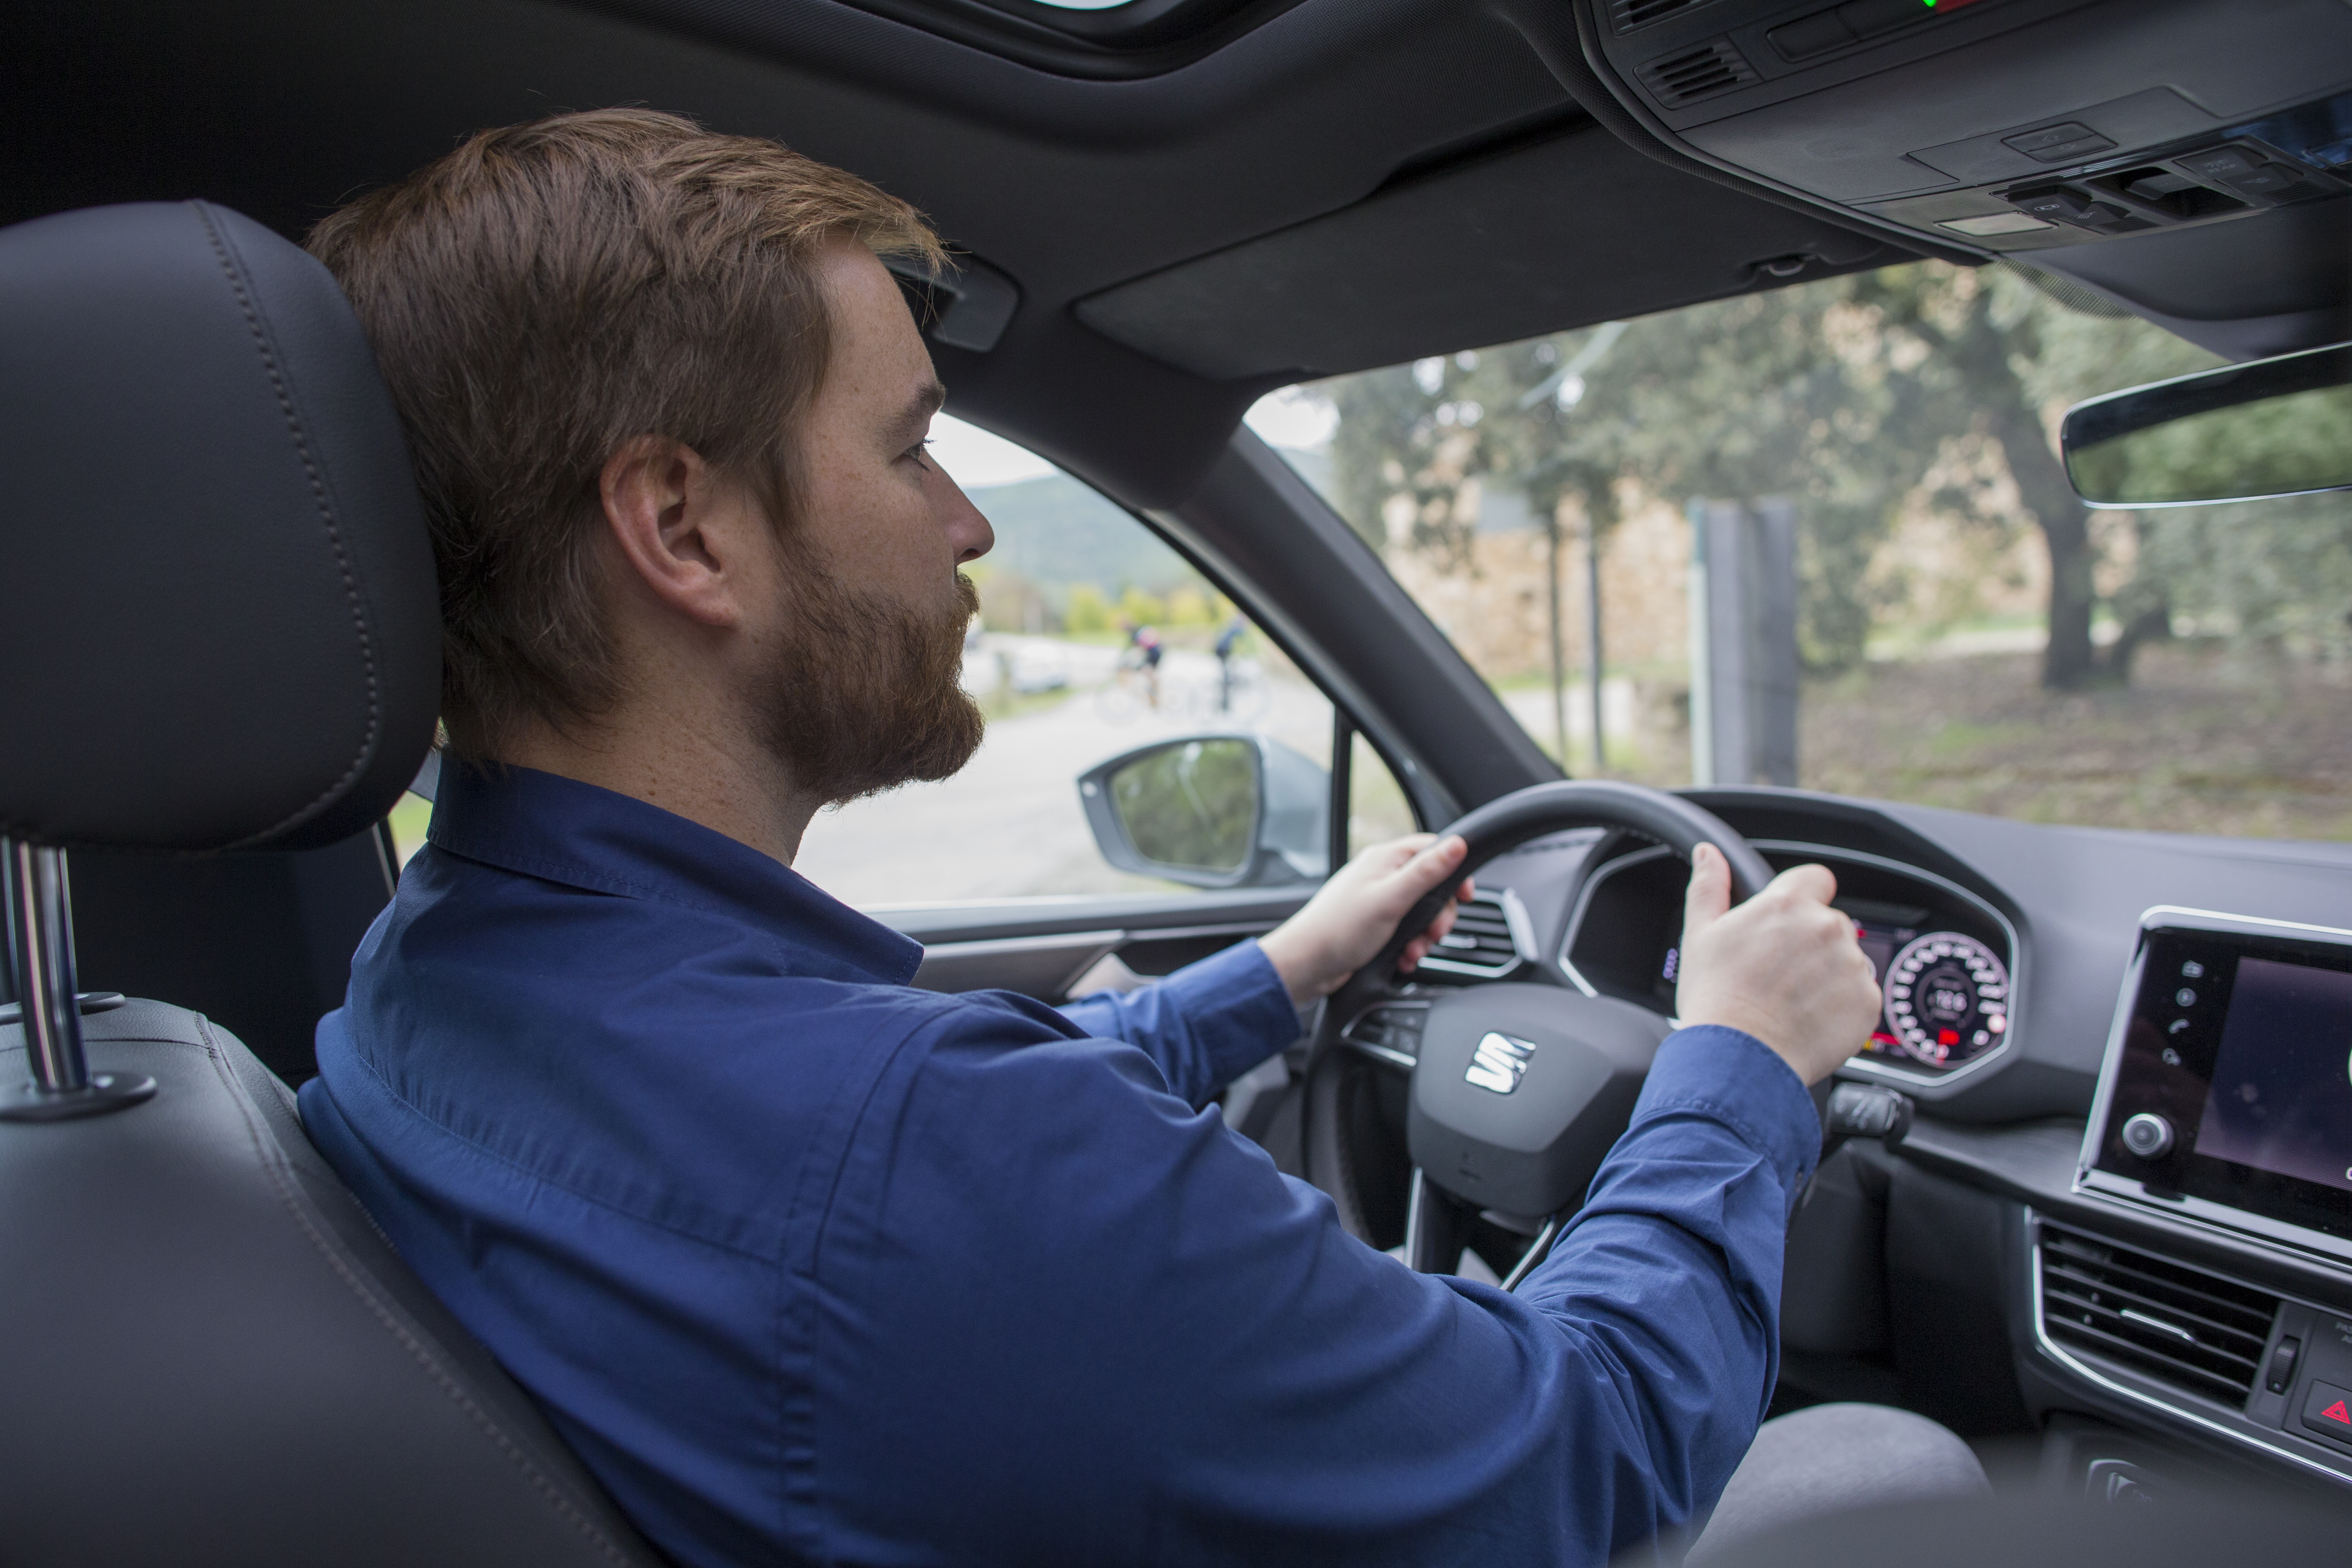 Driving assistants are no substitute for a driver's responsibility